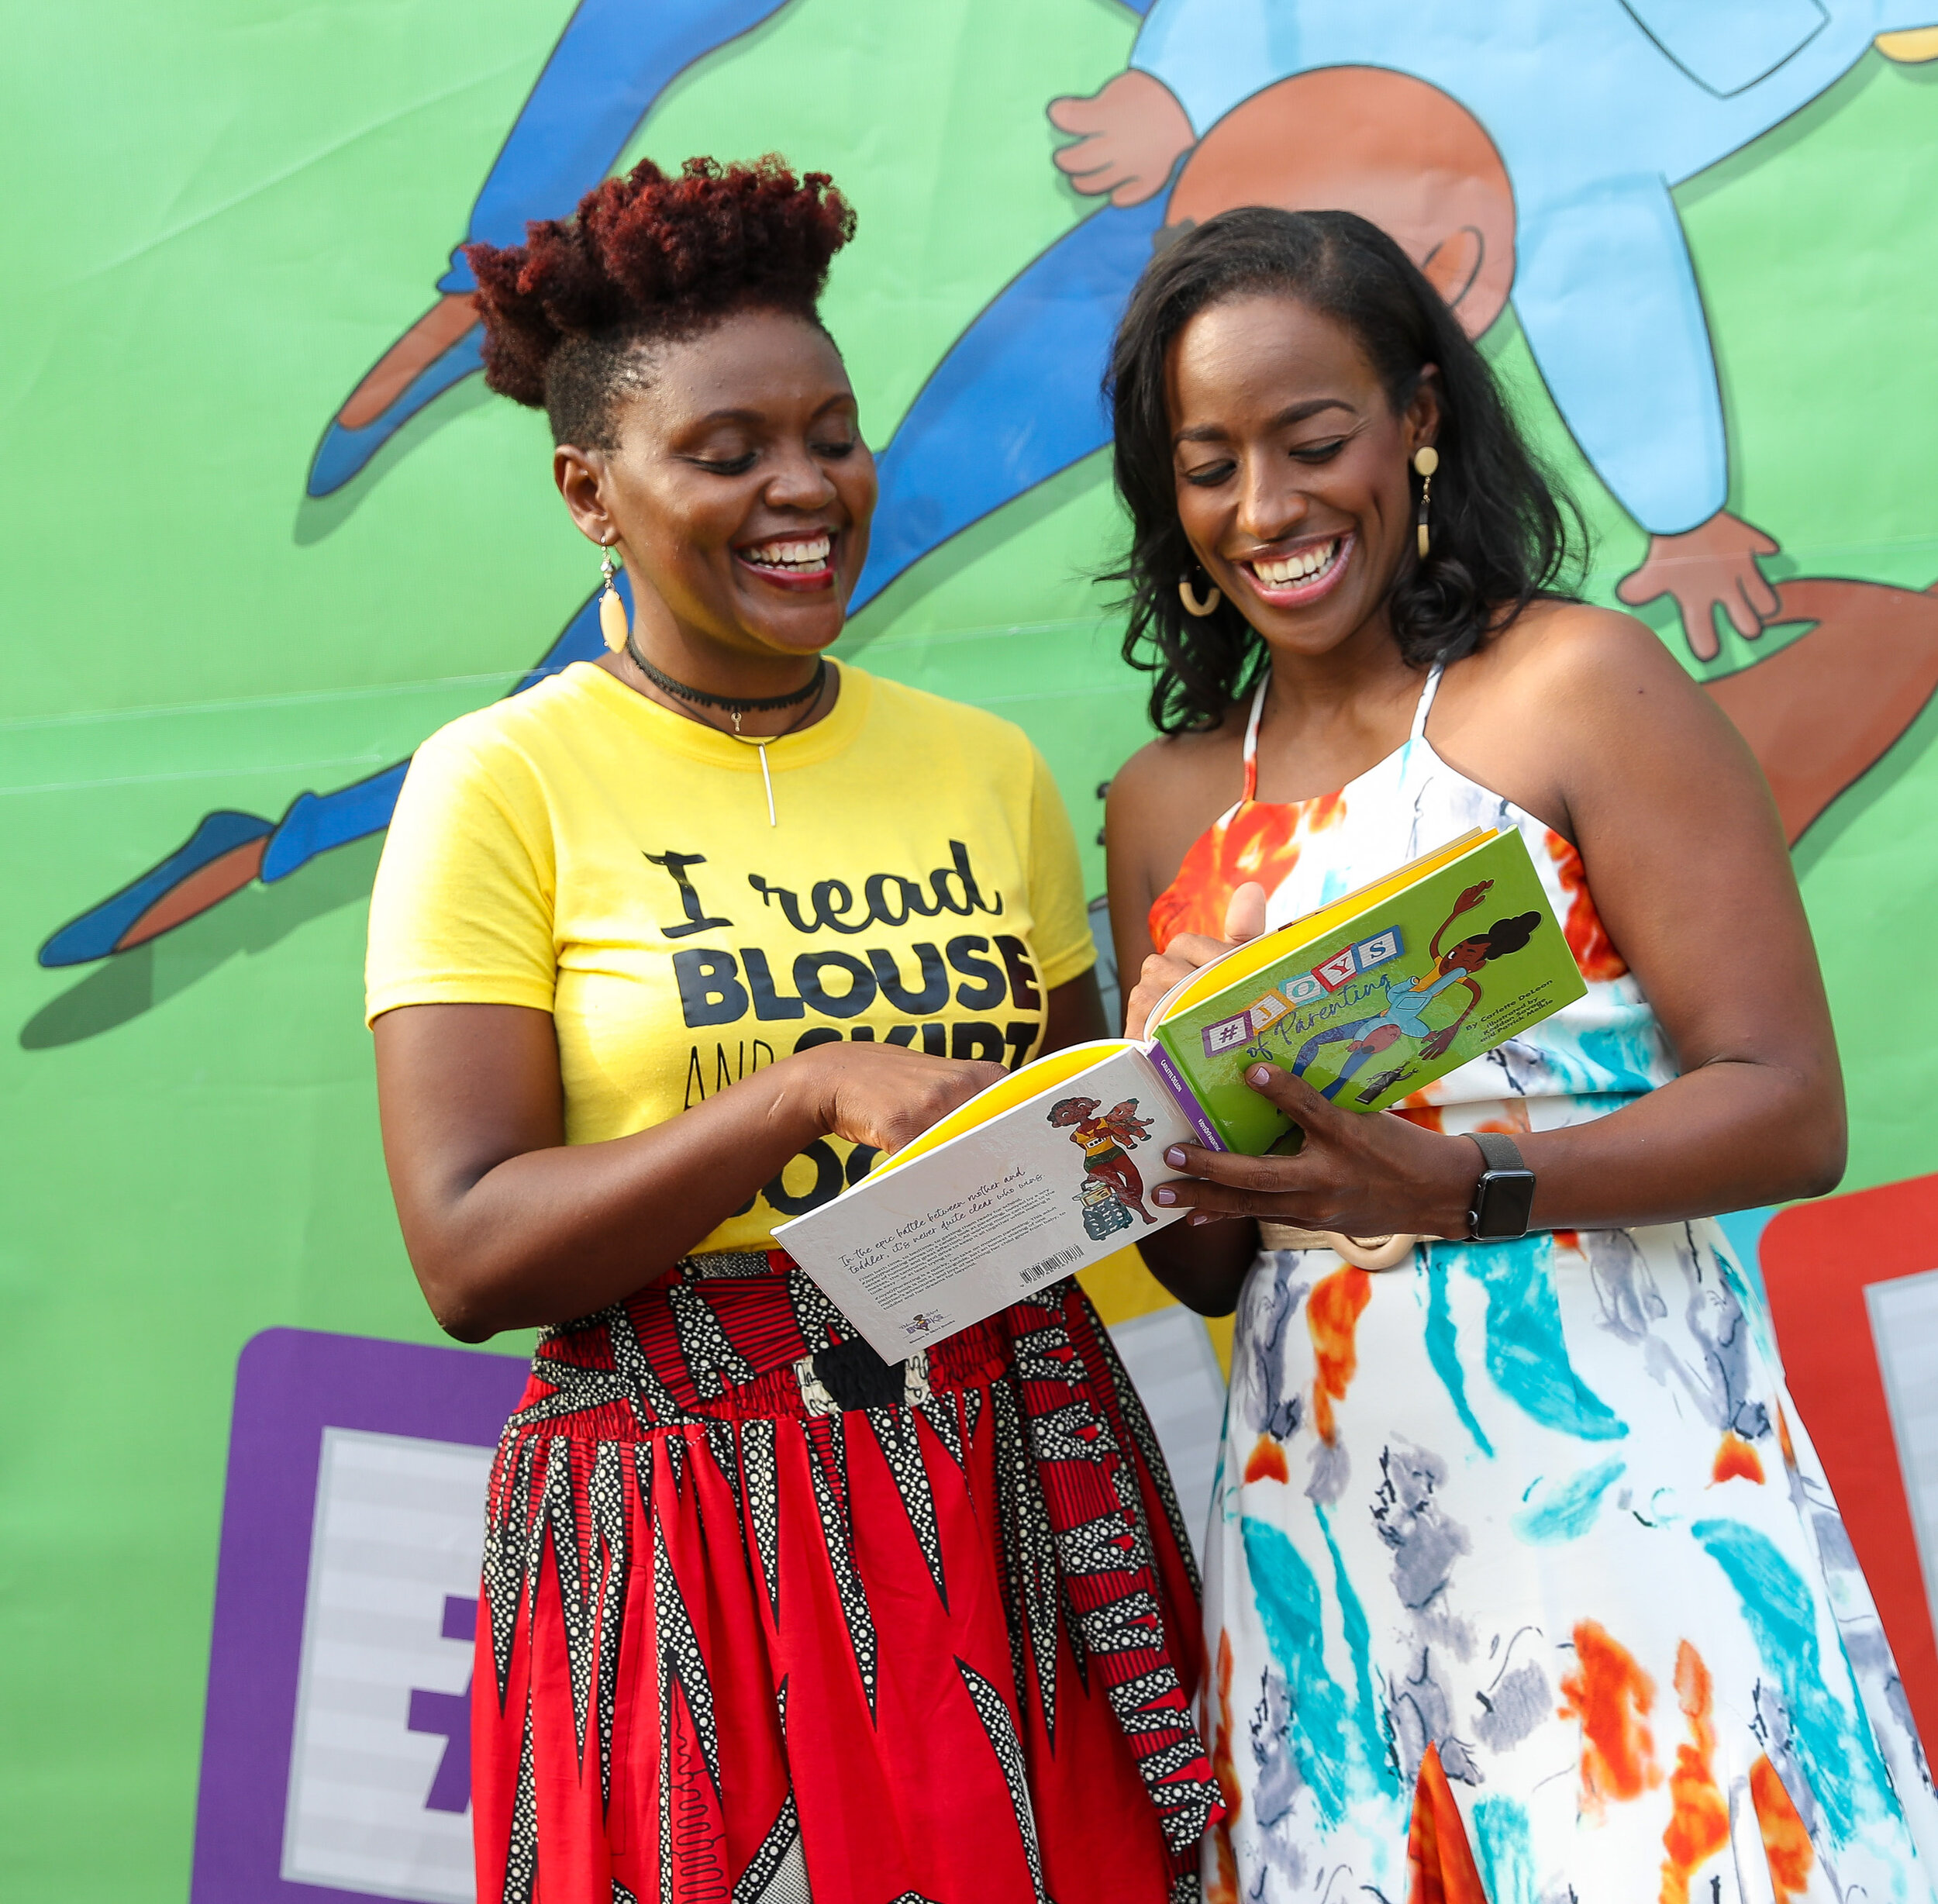 Carlette DeLeon (r) author of the #JoysOfParenting shared a joyous moment with Tanya Batson-Savage owner of publishing house Blouse and Skirt Books an imprint of Blue Banyan Books during the launch of the book held on Saturday July 27 at the Hope Zoo Tree House.